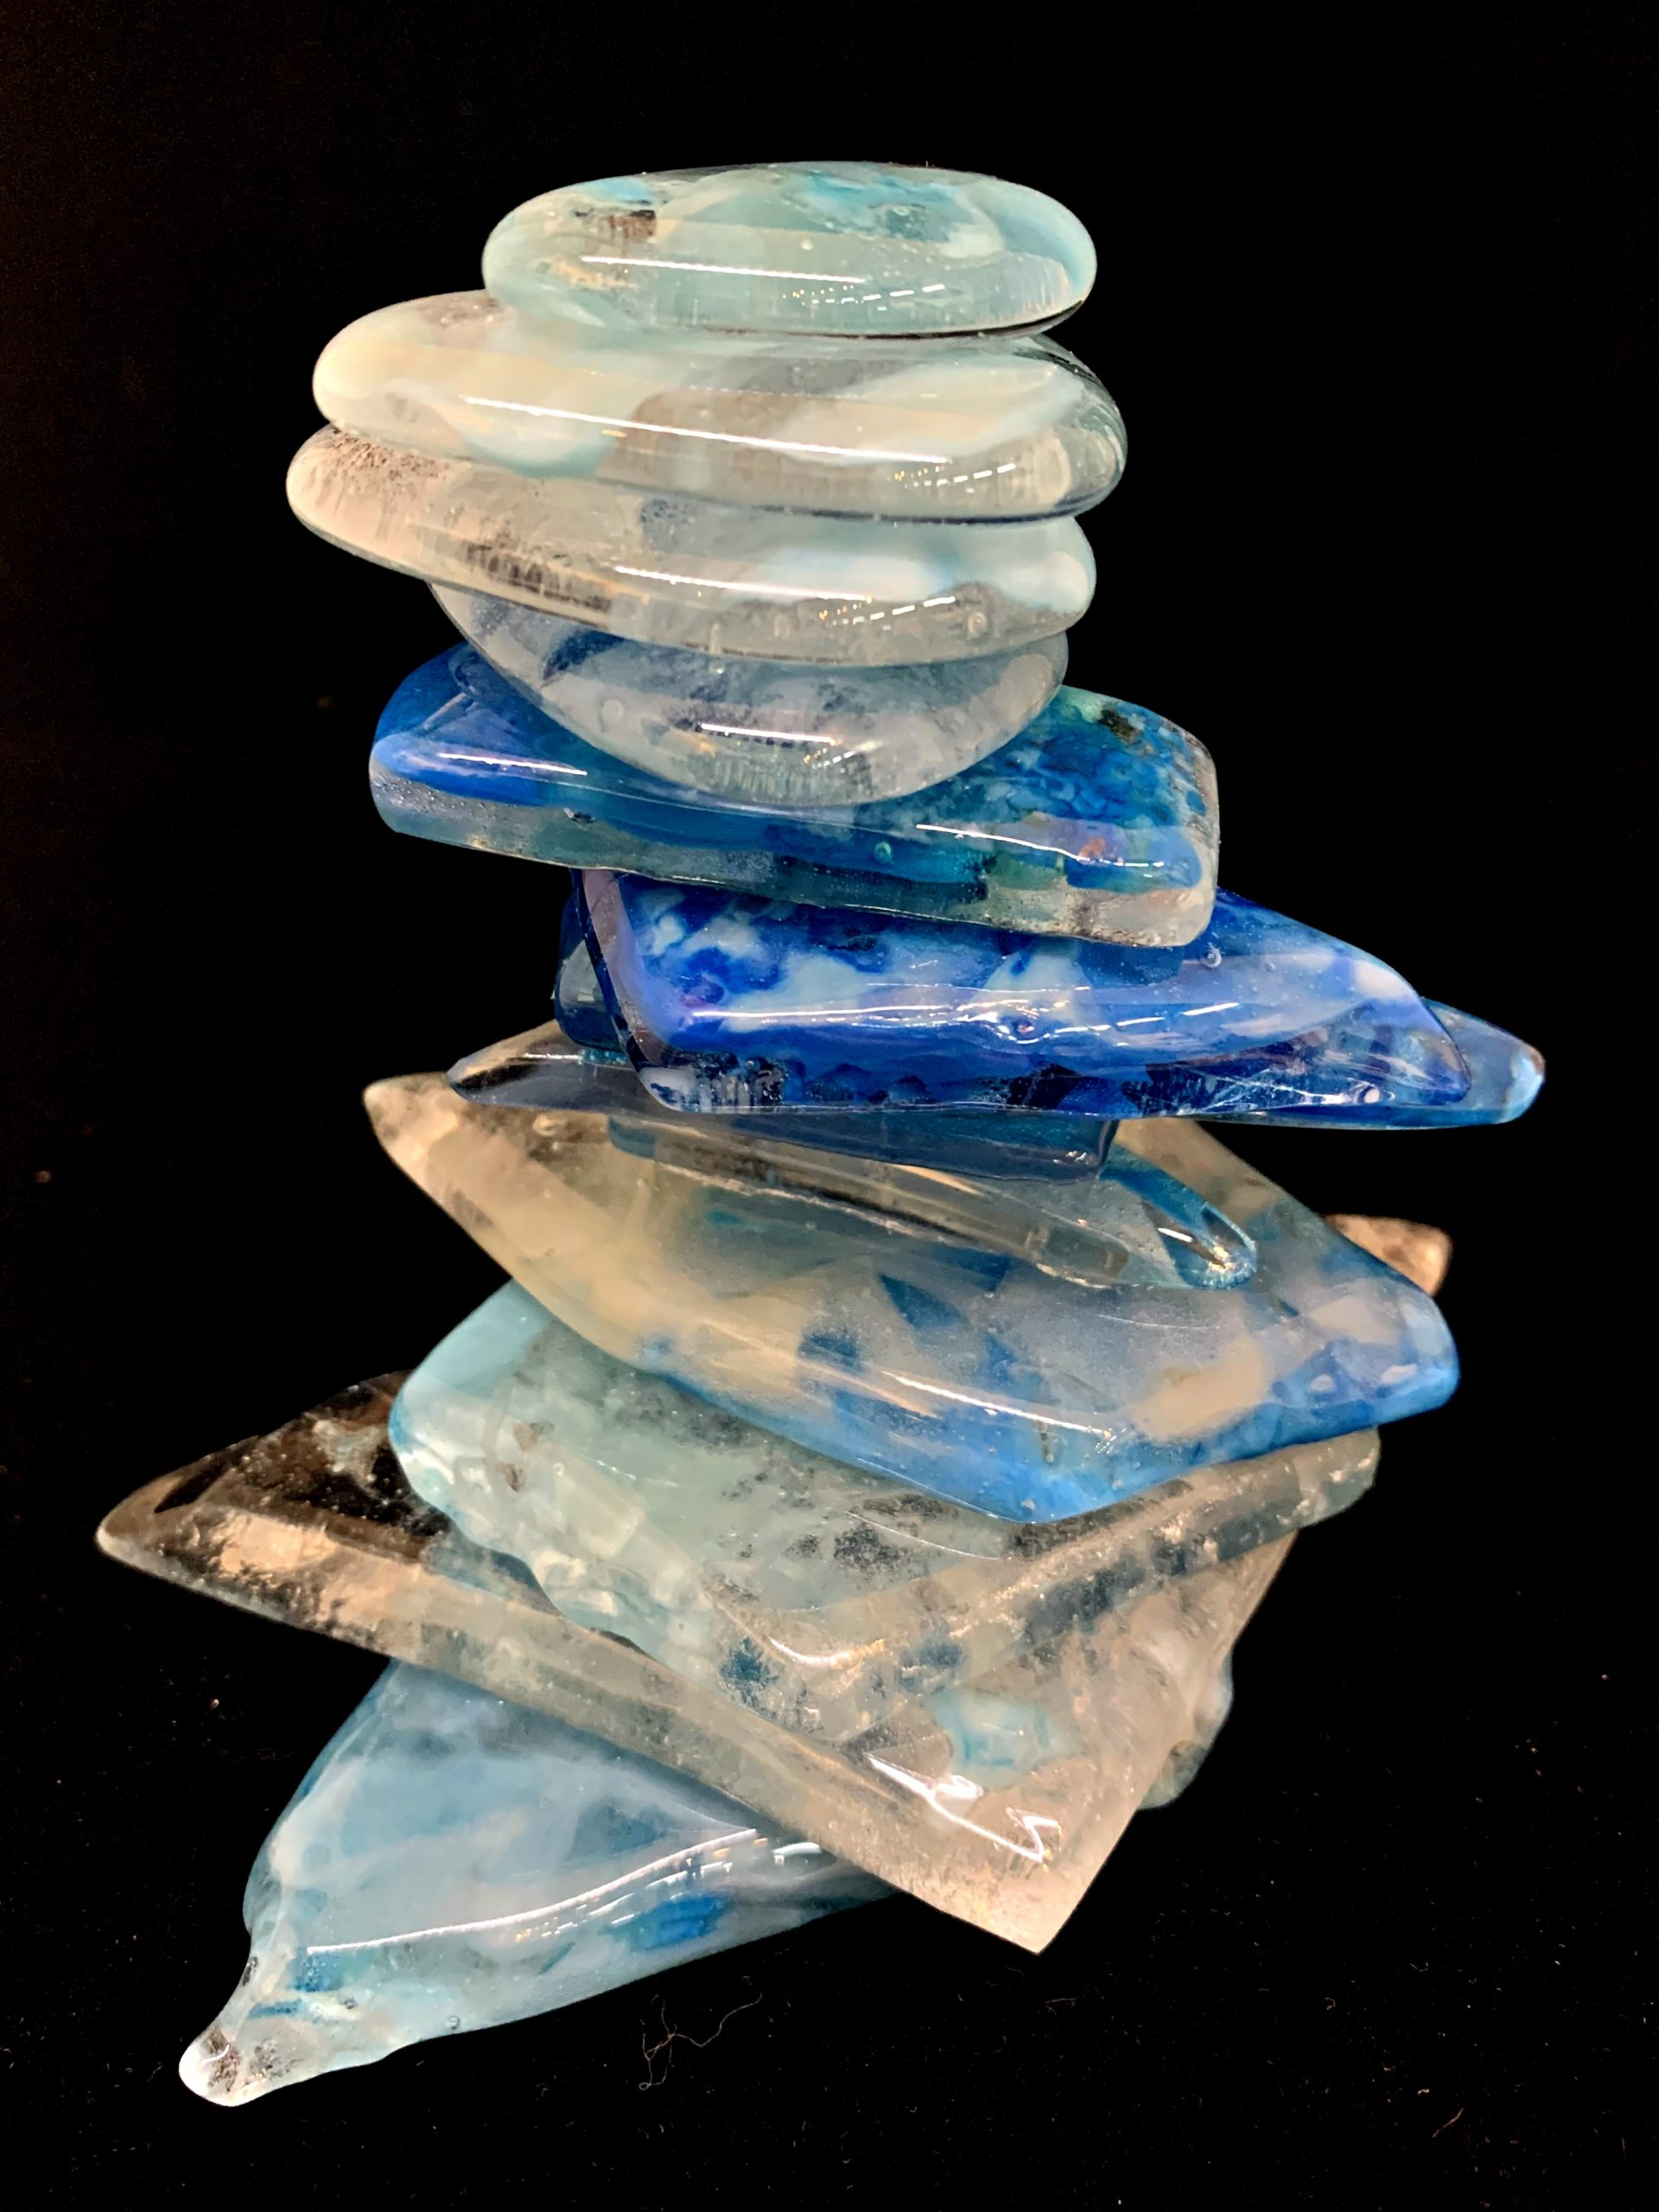 Cast Glass Rocky Mountain Cairn 35 by Heather Cuell | Effusion Art Gallery + Cast Glass Studio, Invermere BC